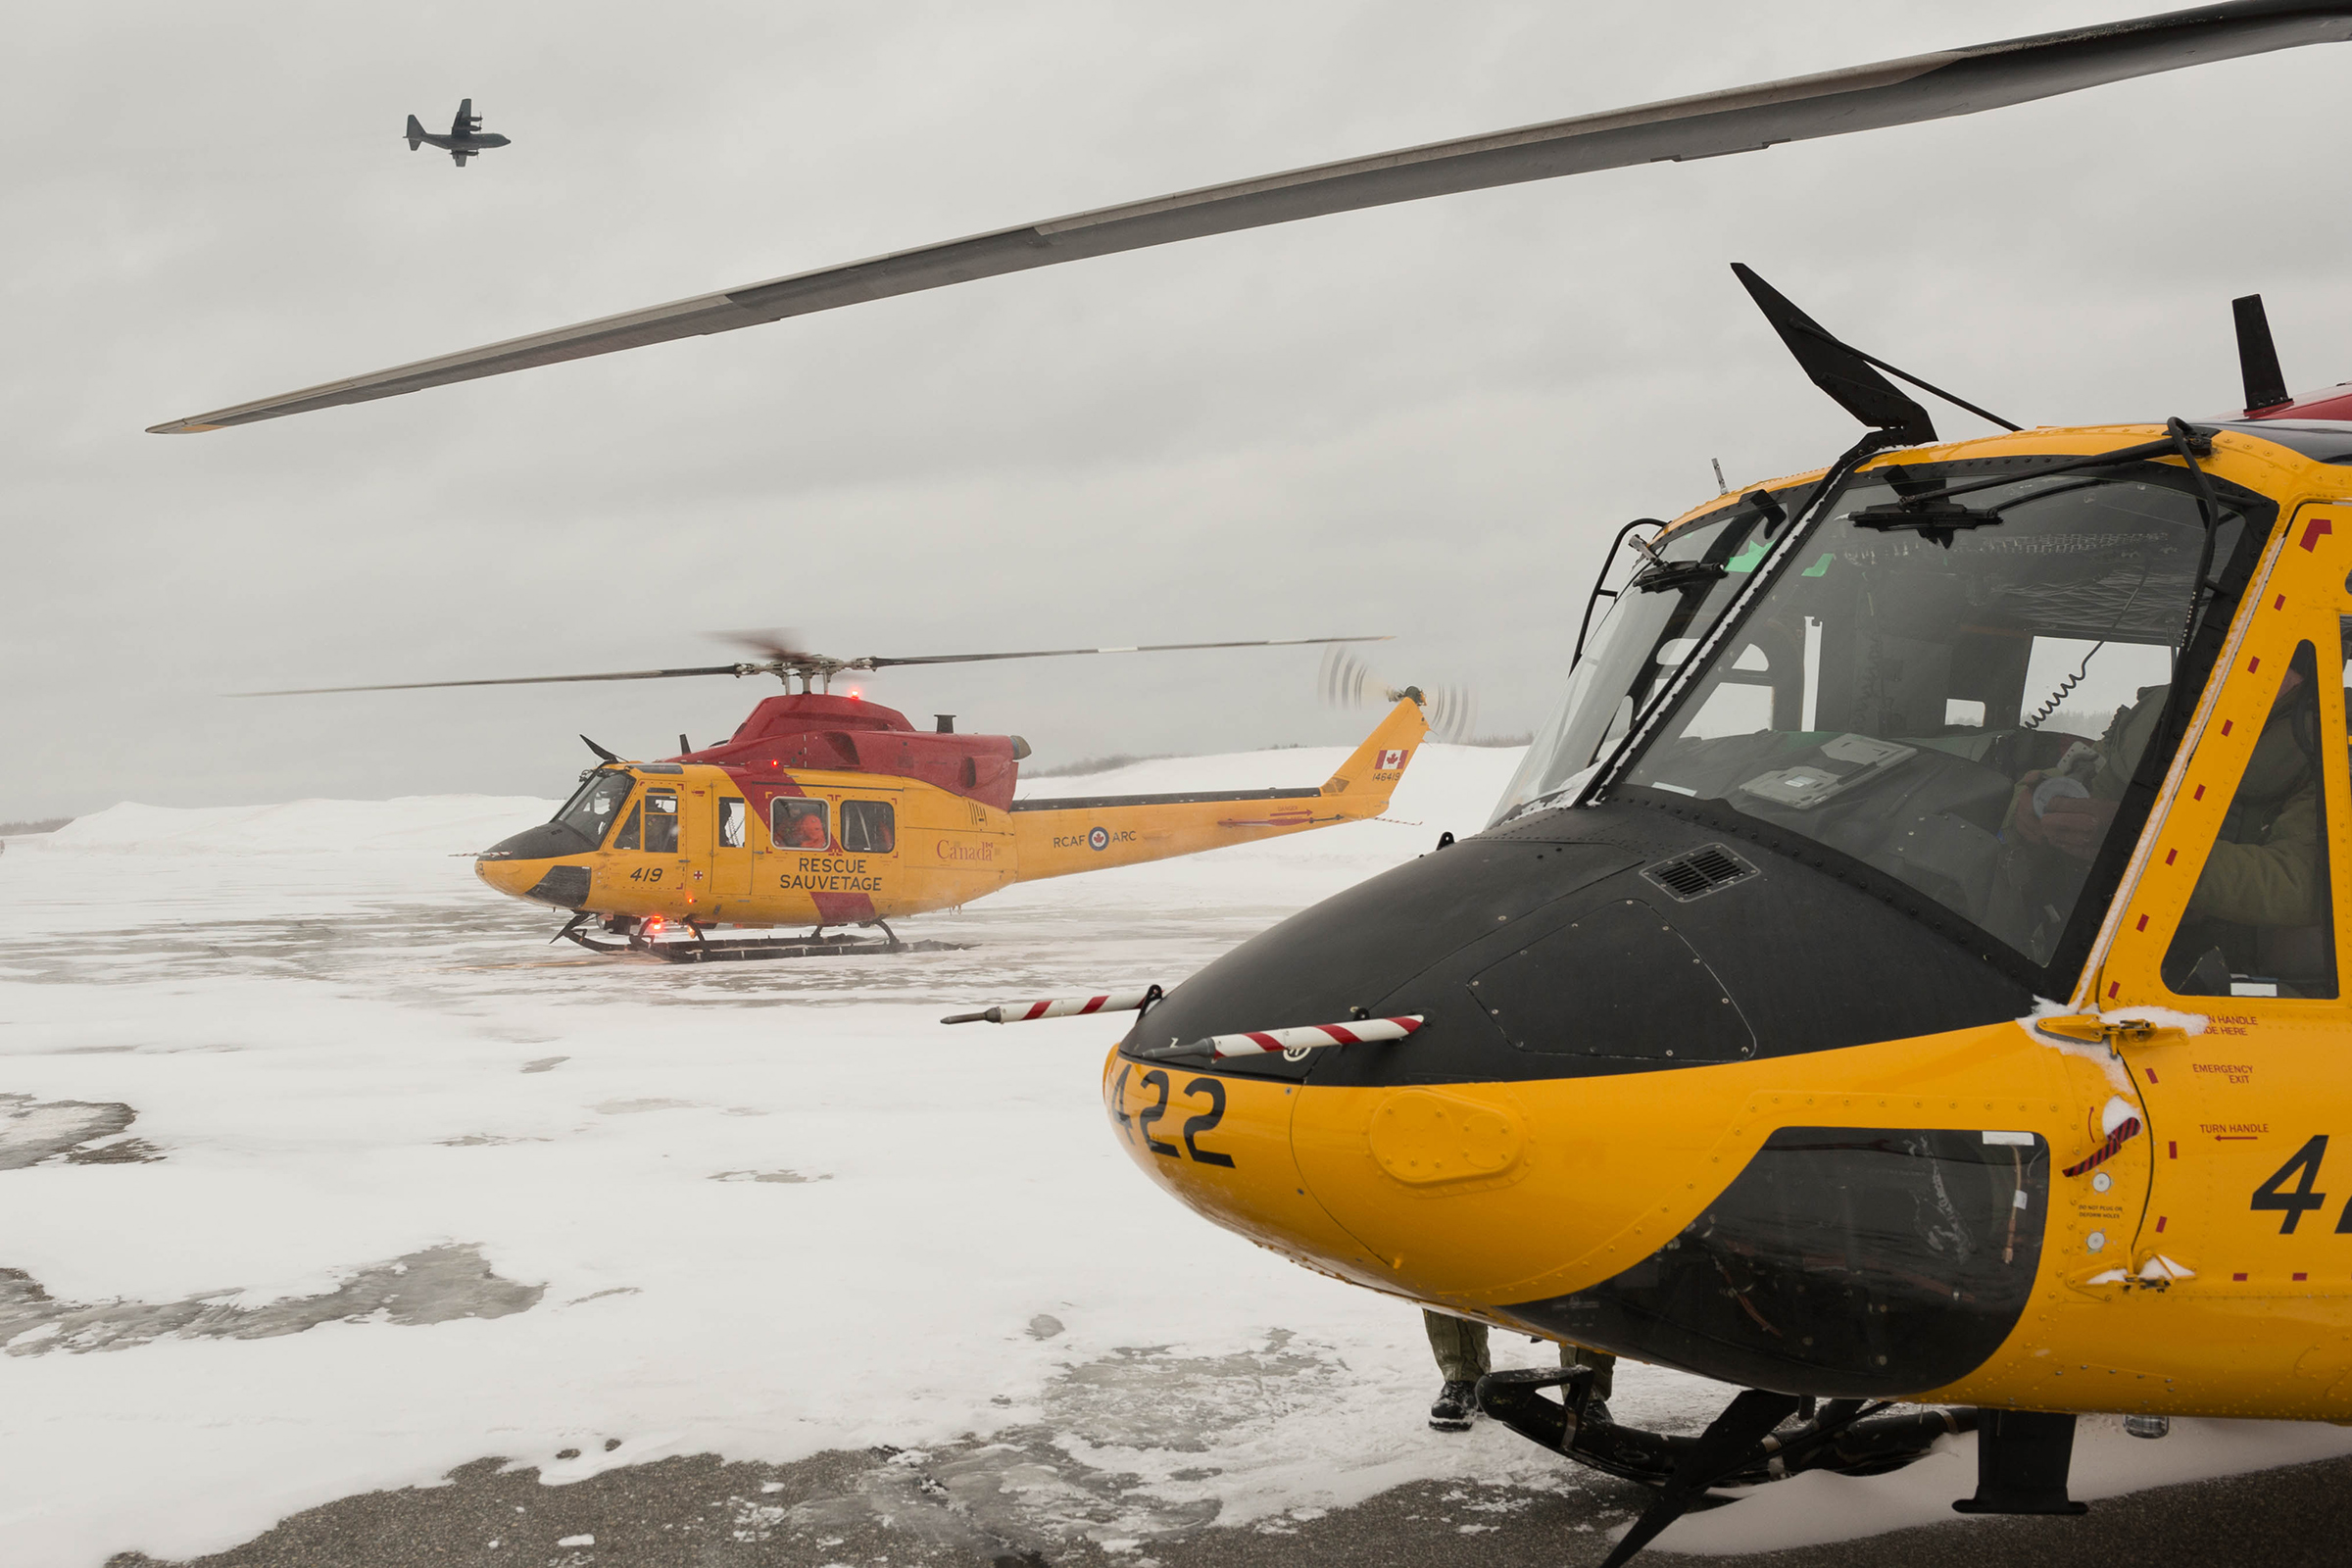 As an RCAF CC-130 Hercules flies overhead, two RCAF CH-146 Griffon search and rescue helicopters and their crews prepare to lift off from the snow-covered tarmac in Timmins, Ontario, on March 10, 2019, to resume the search for a missing civilian helicopter. PHOTO: Corporal Zebulon Salmaniw, TN07-2019-0090-019